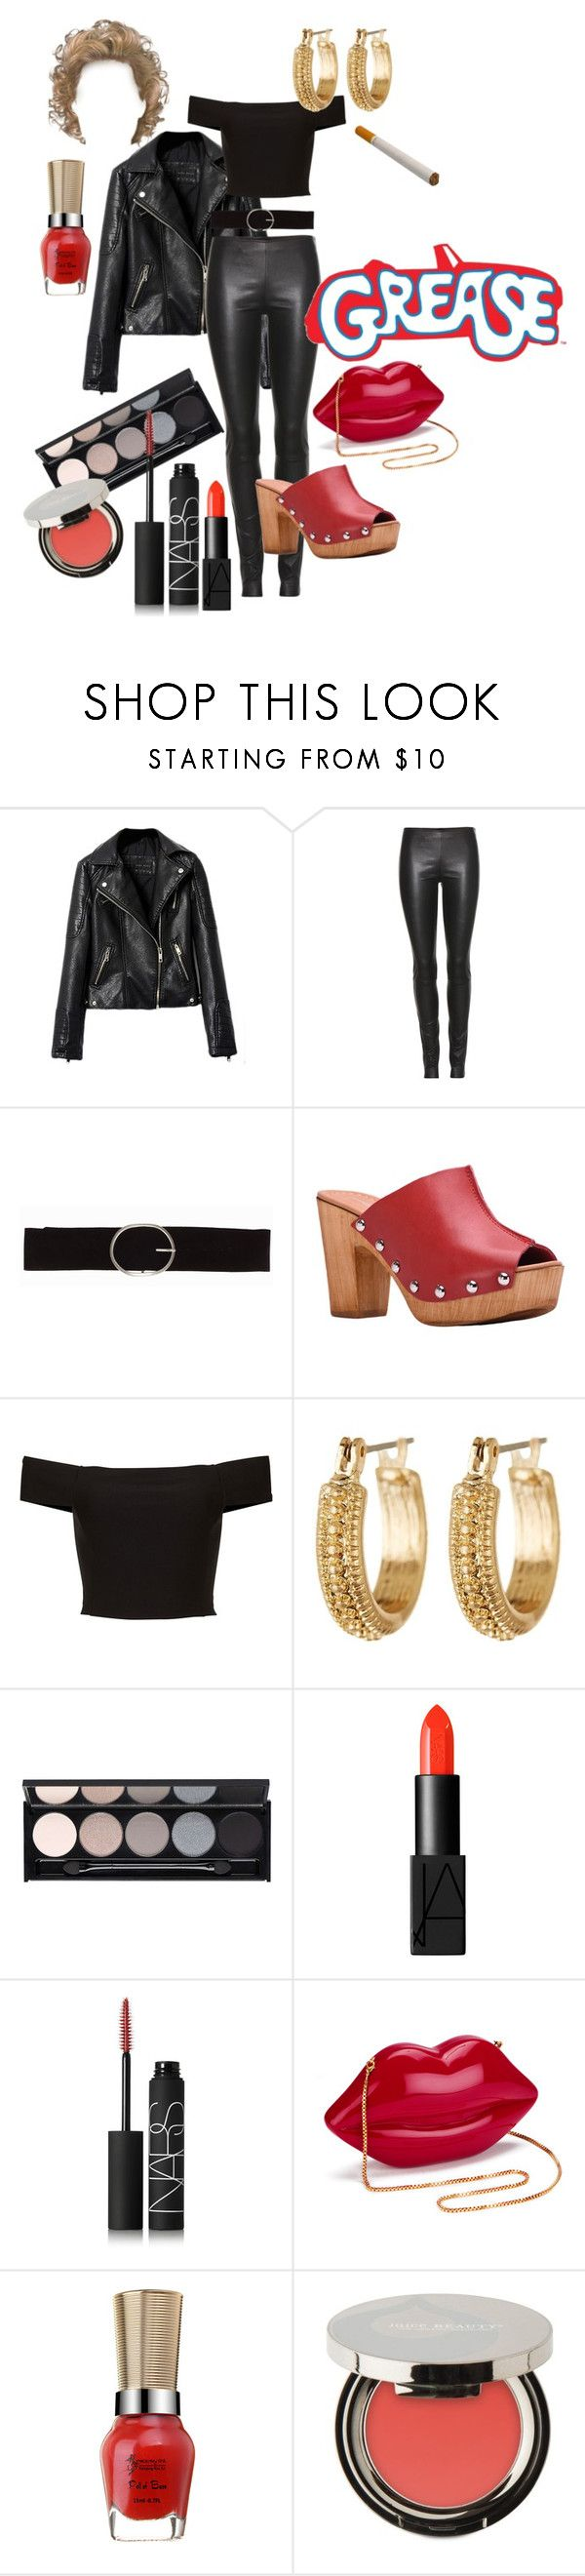 """""""Sandy Olsson (Grease) costume"""" by mariavittoria-7 ❤ liked on Polyvore featuring The Row, Vero Moda, Charles David, Melrose & Market, ETUÍ, Witchery, NARS Cosmetics, Lulu Guinness and Juice Beauty"""